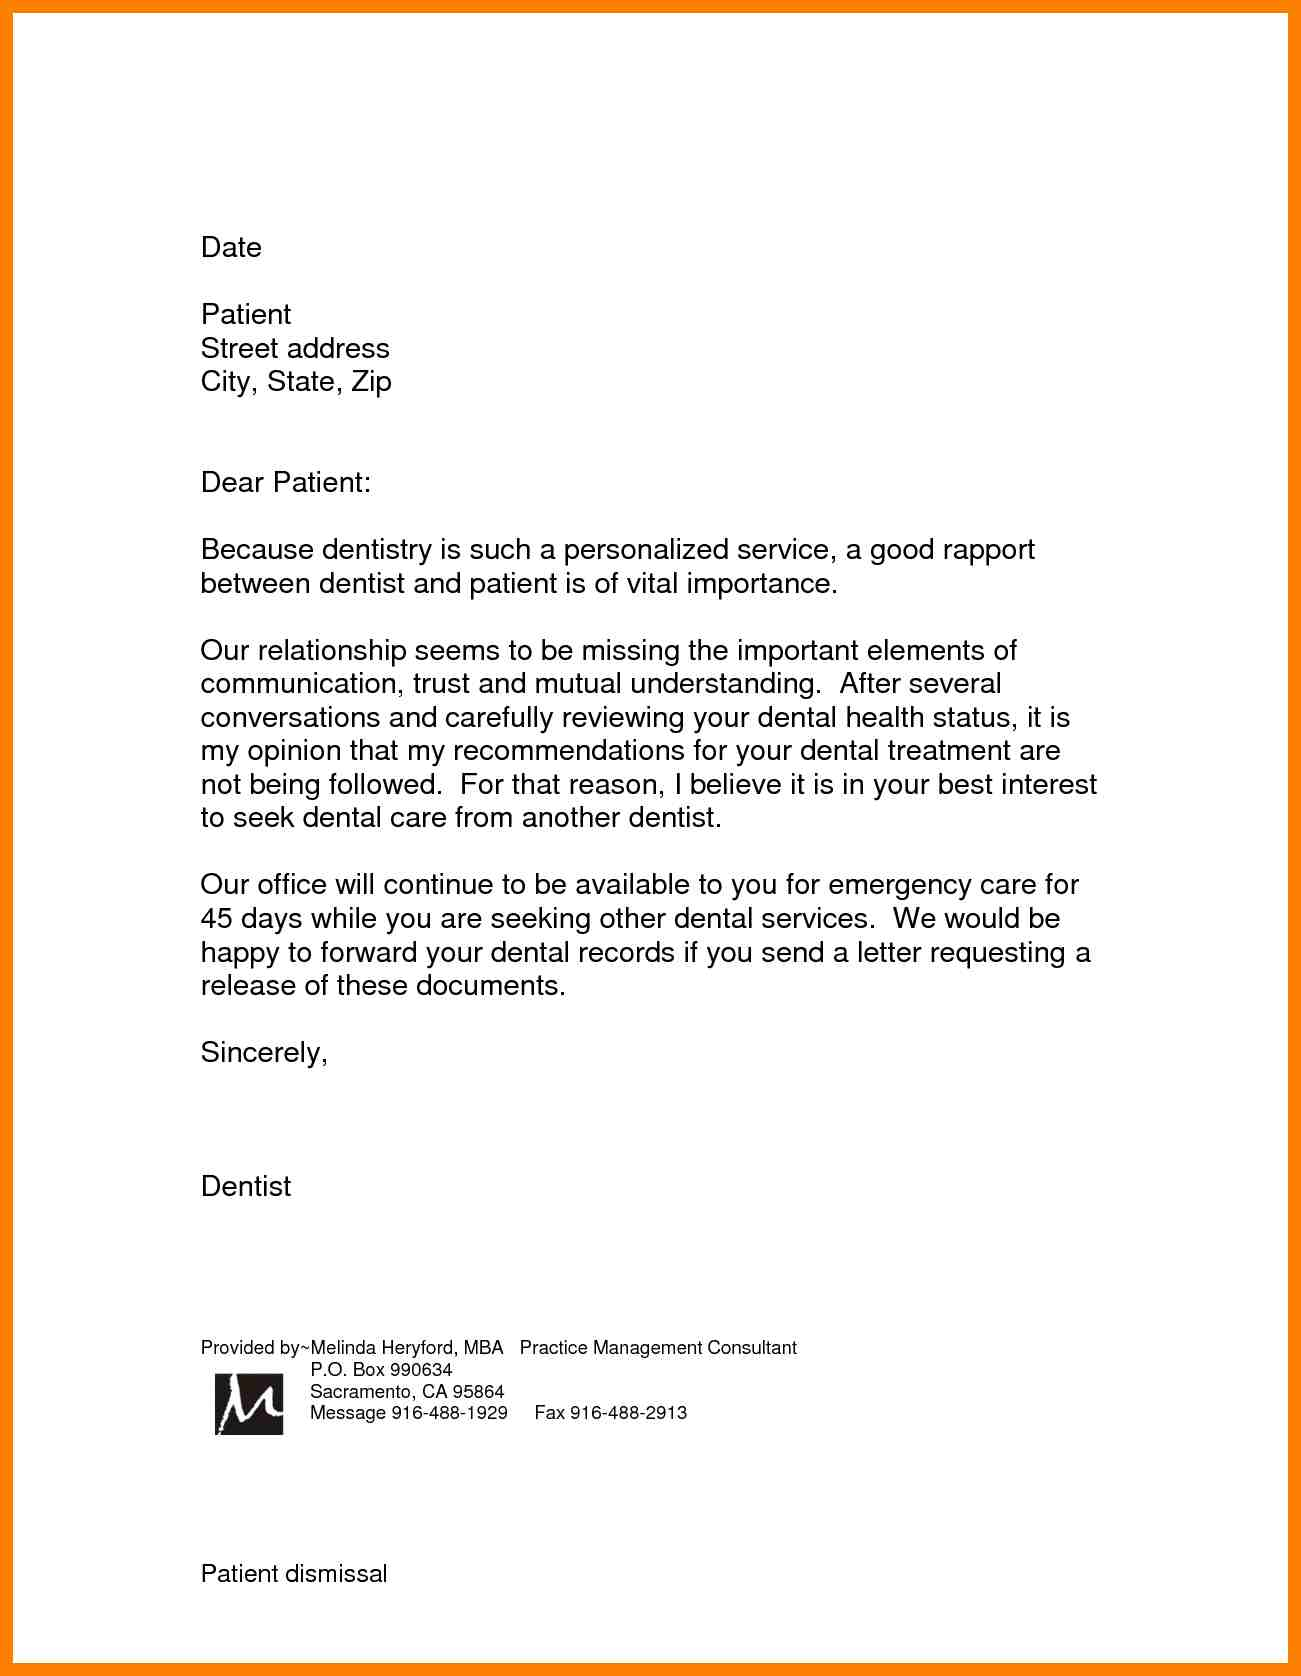 Dental Patient Dismissal Letter Template - Dismissal Letter Acas – Imzadi Fragrances